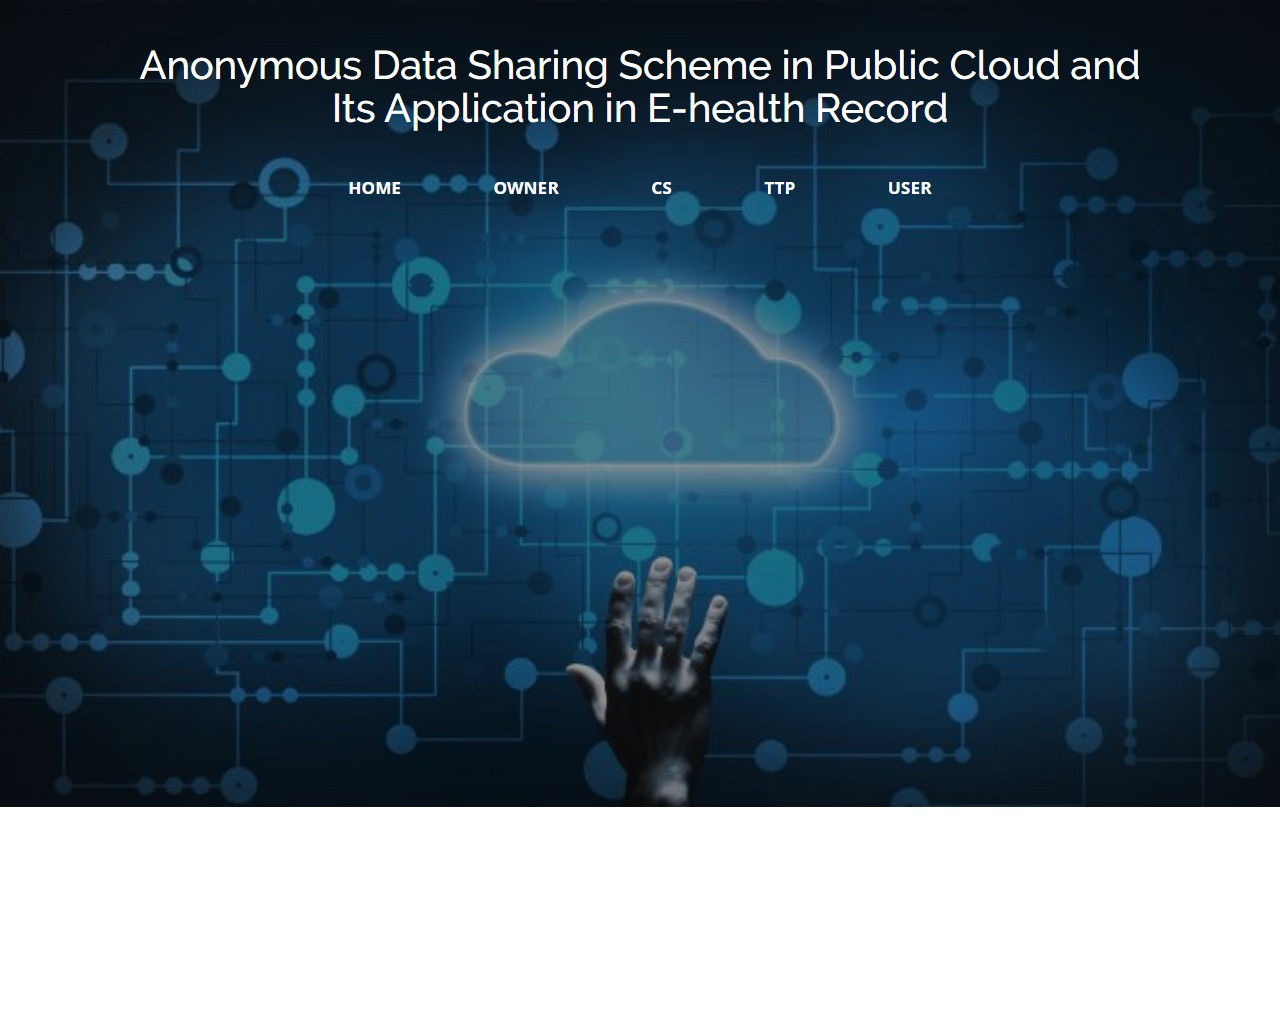 Anonymous Data Sharing Scheme In Public Cloud And Its Application In E-health Record